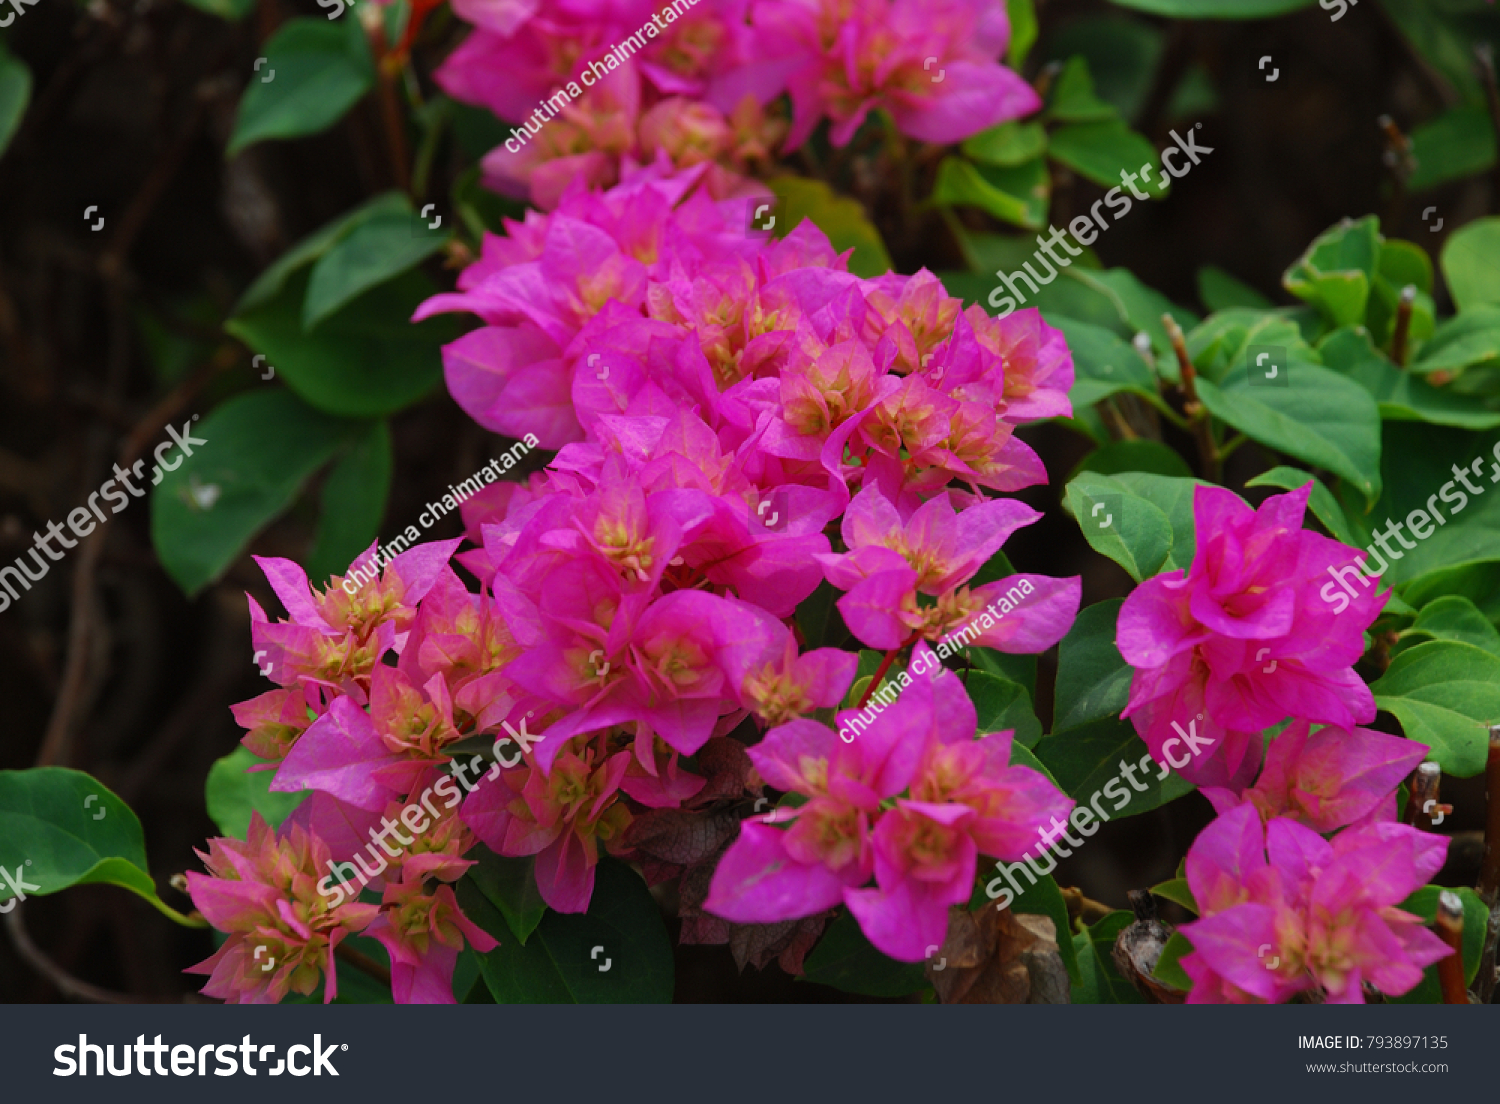 Bougainvillea Perennial Bush The Thorns Up The Trunk Single Leaves